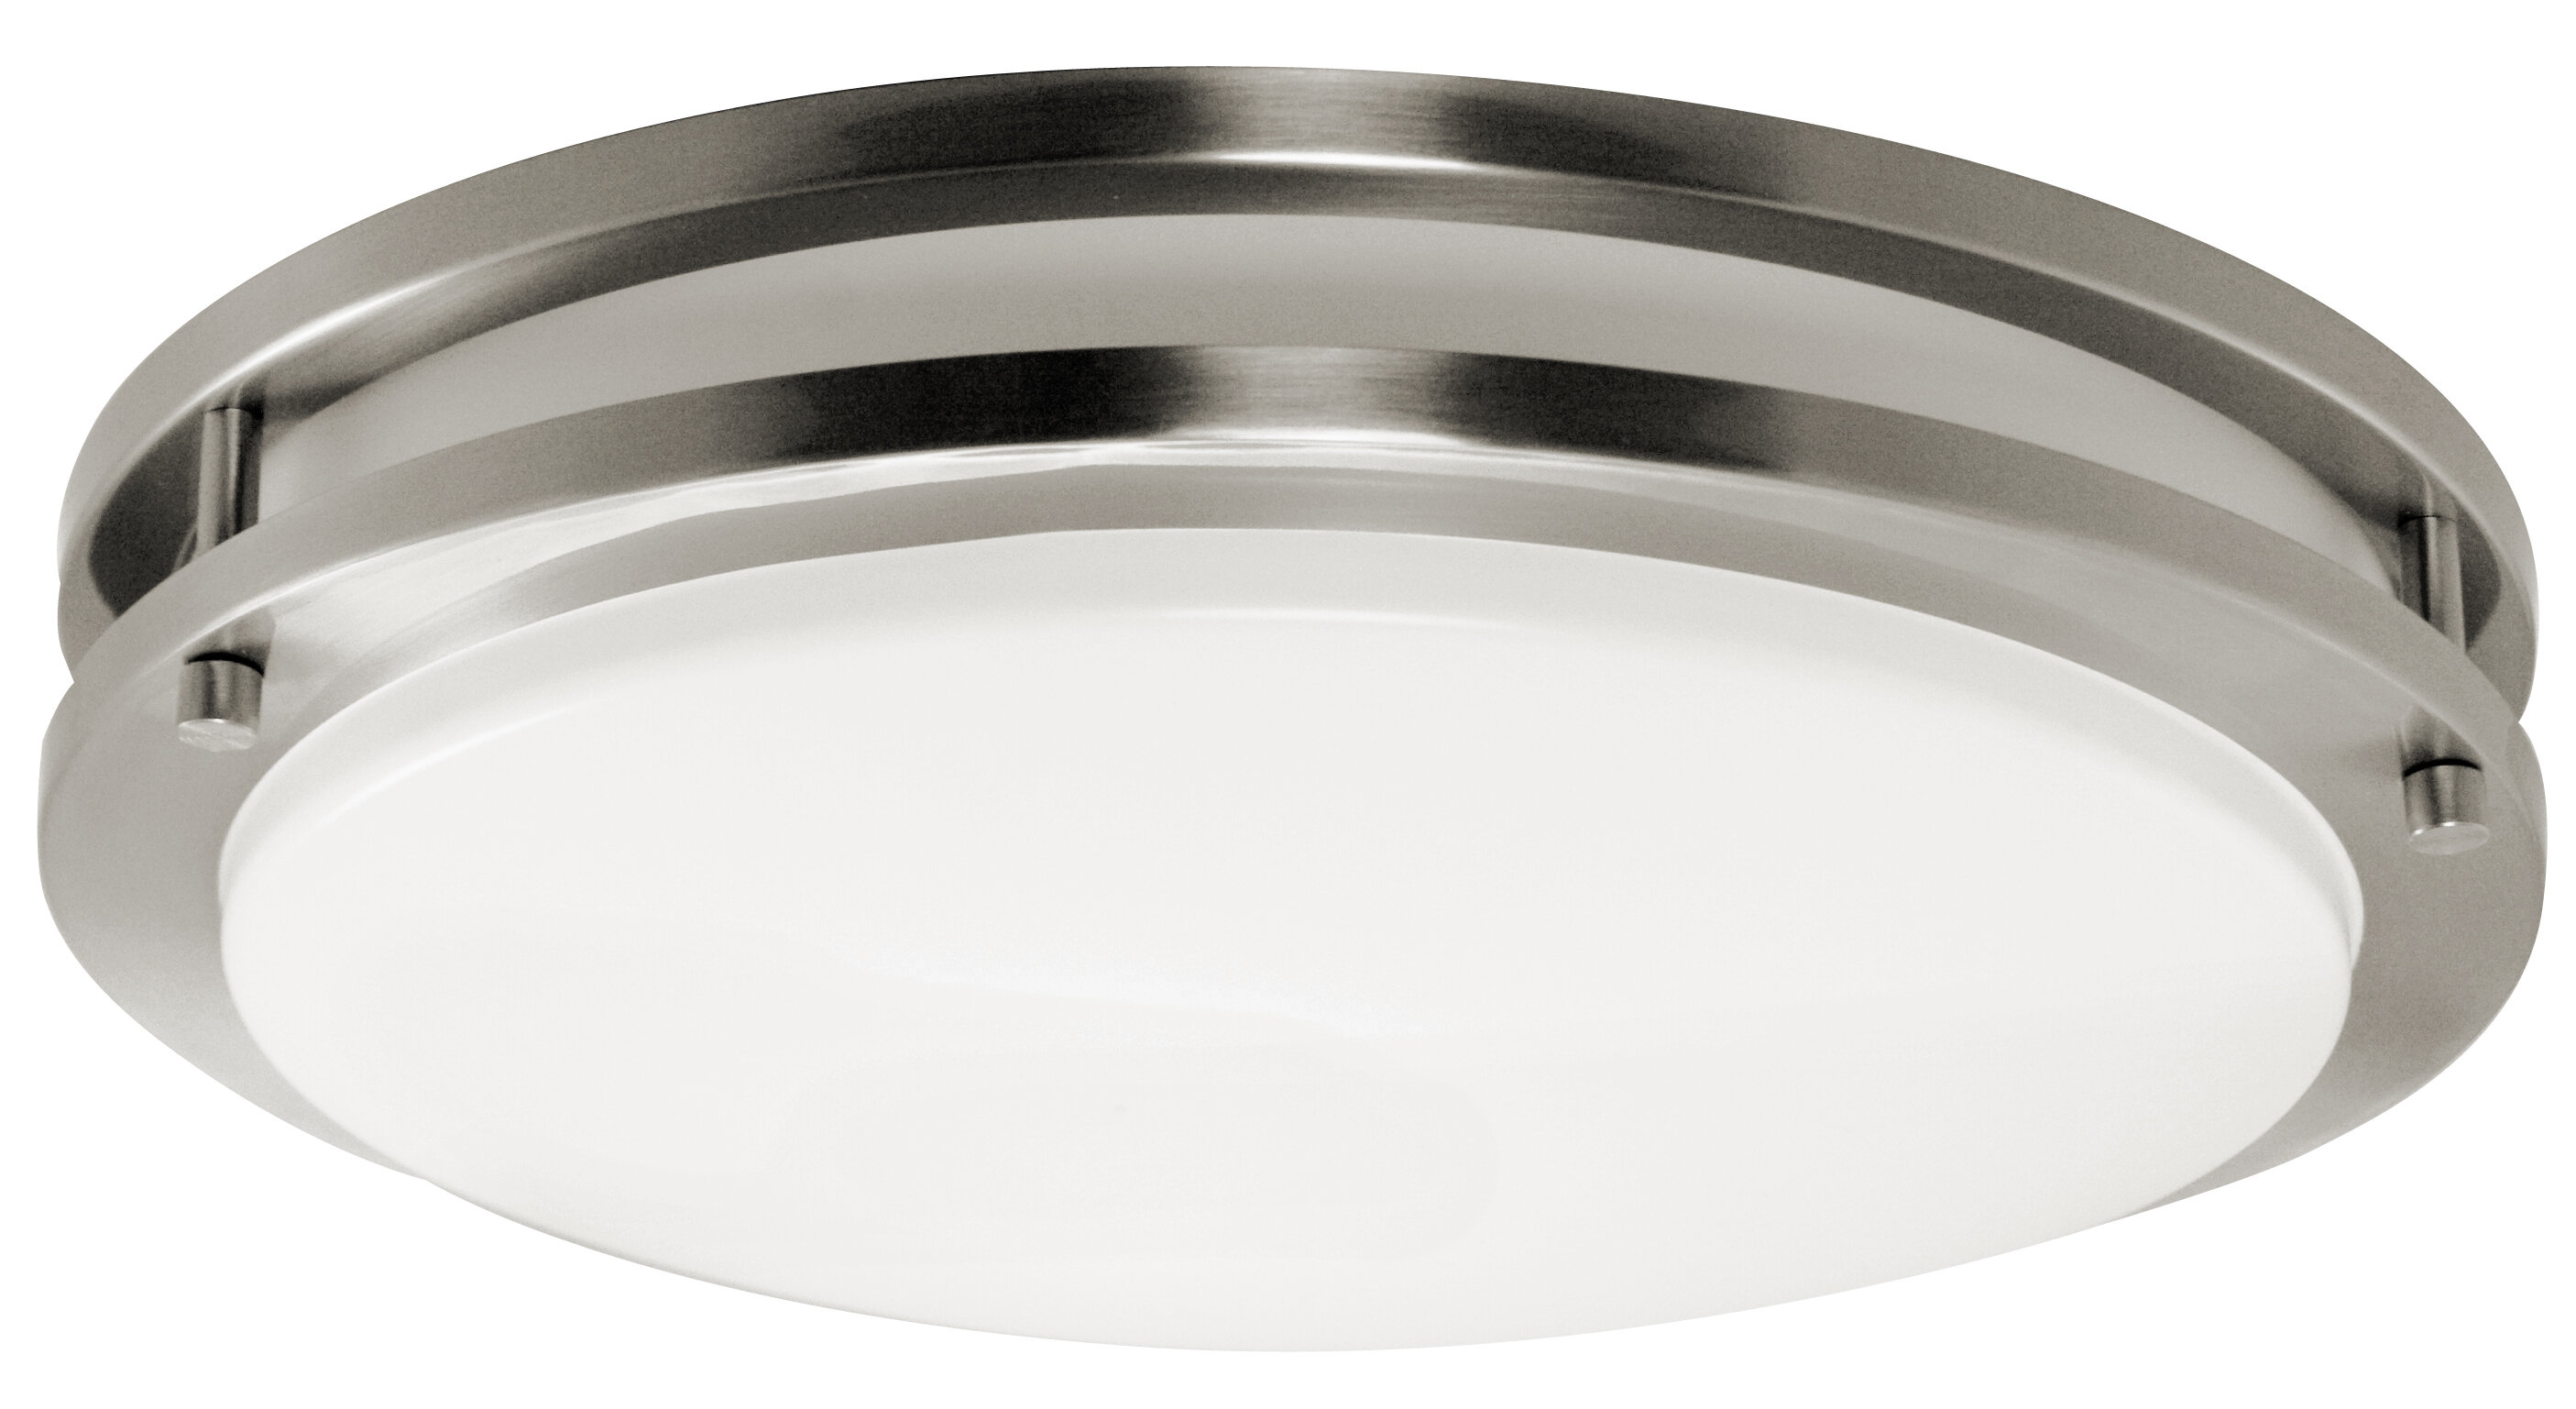 Efficientlighting 2 Light 16 Simple Circle Flush Mount Wayfair